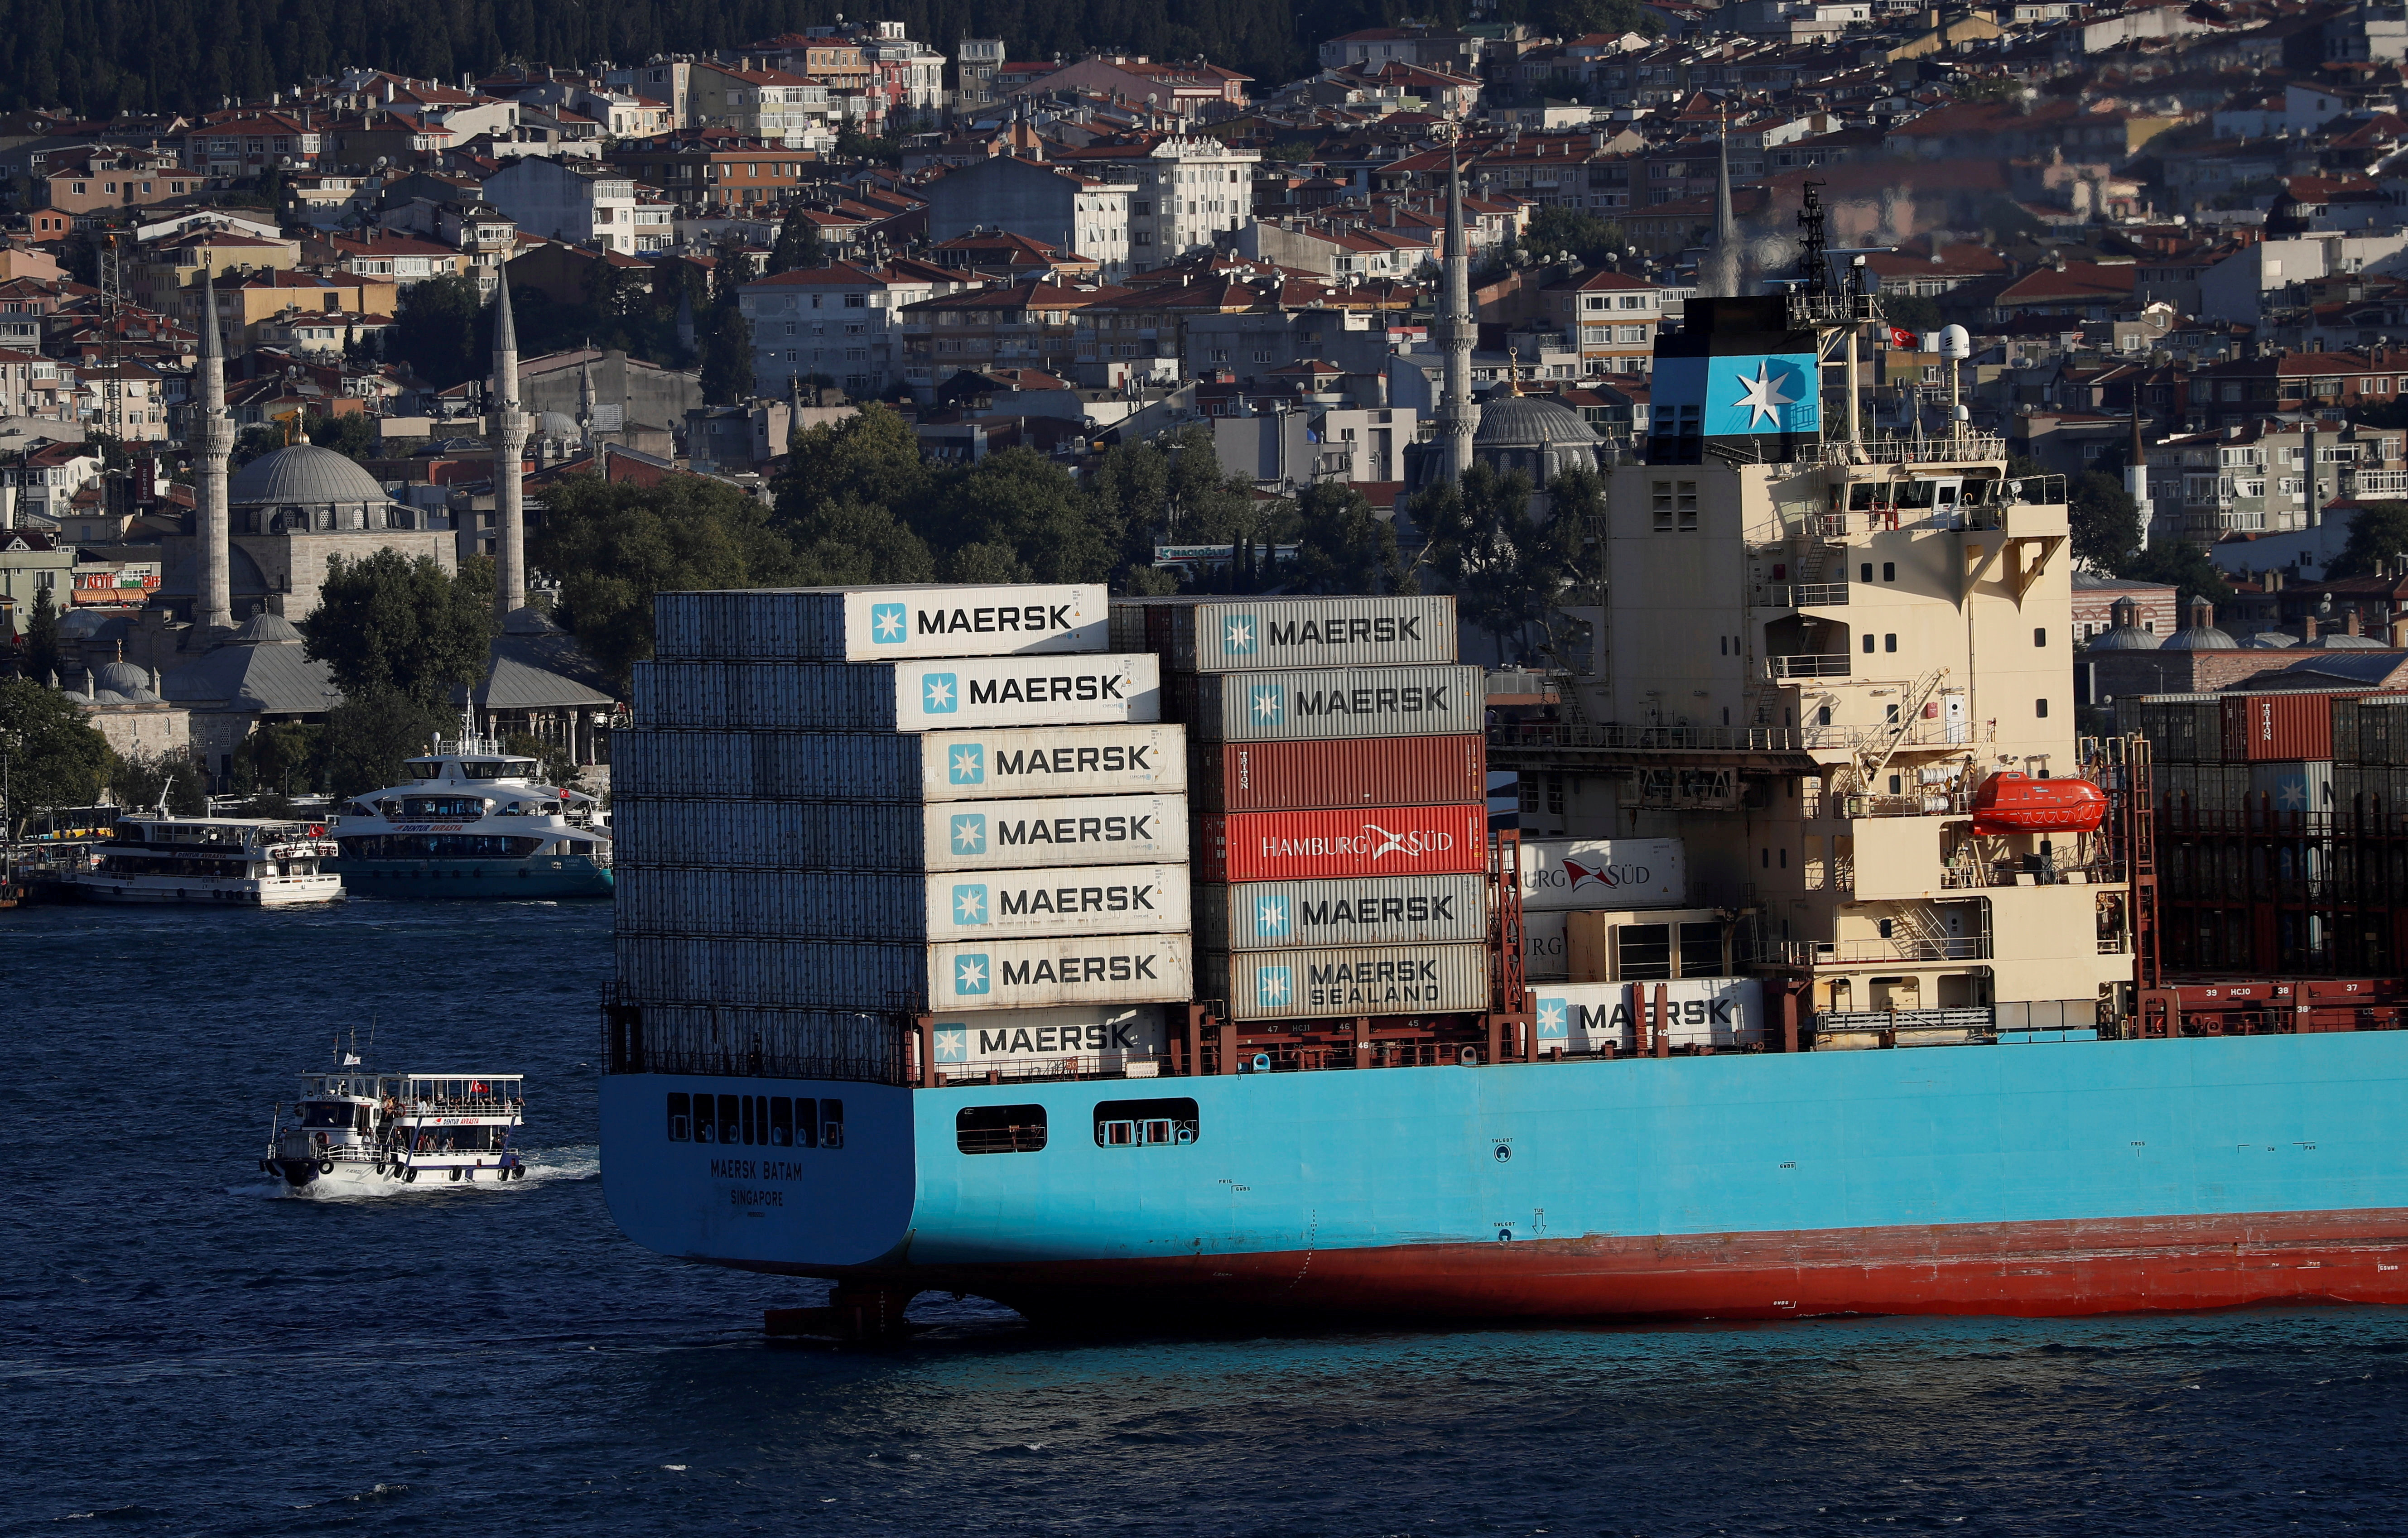 The Maersk Line container ship Maersk Batam sails in the Bosphorus, on its way to the Mediterranean Sea, in Istanbul, Turkey August 10, 2018. REUTERS/Murad Sezer